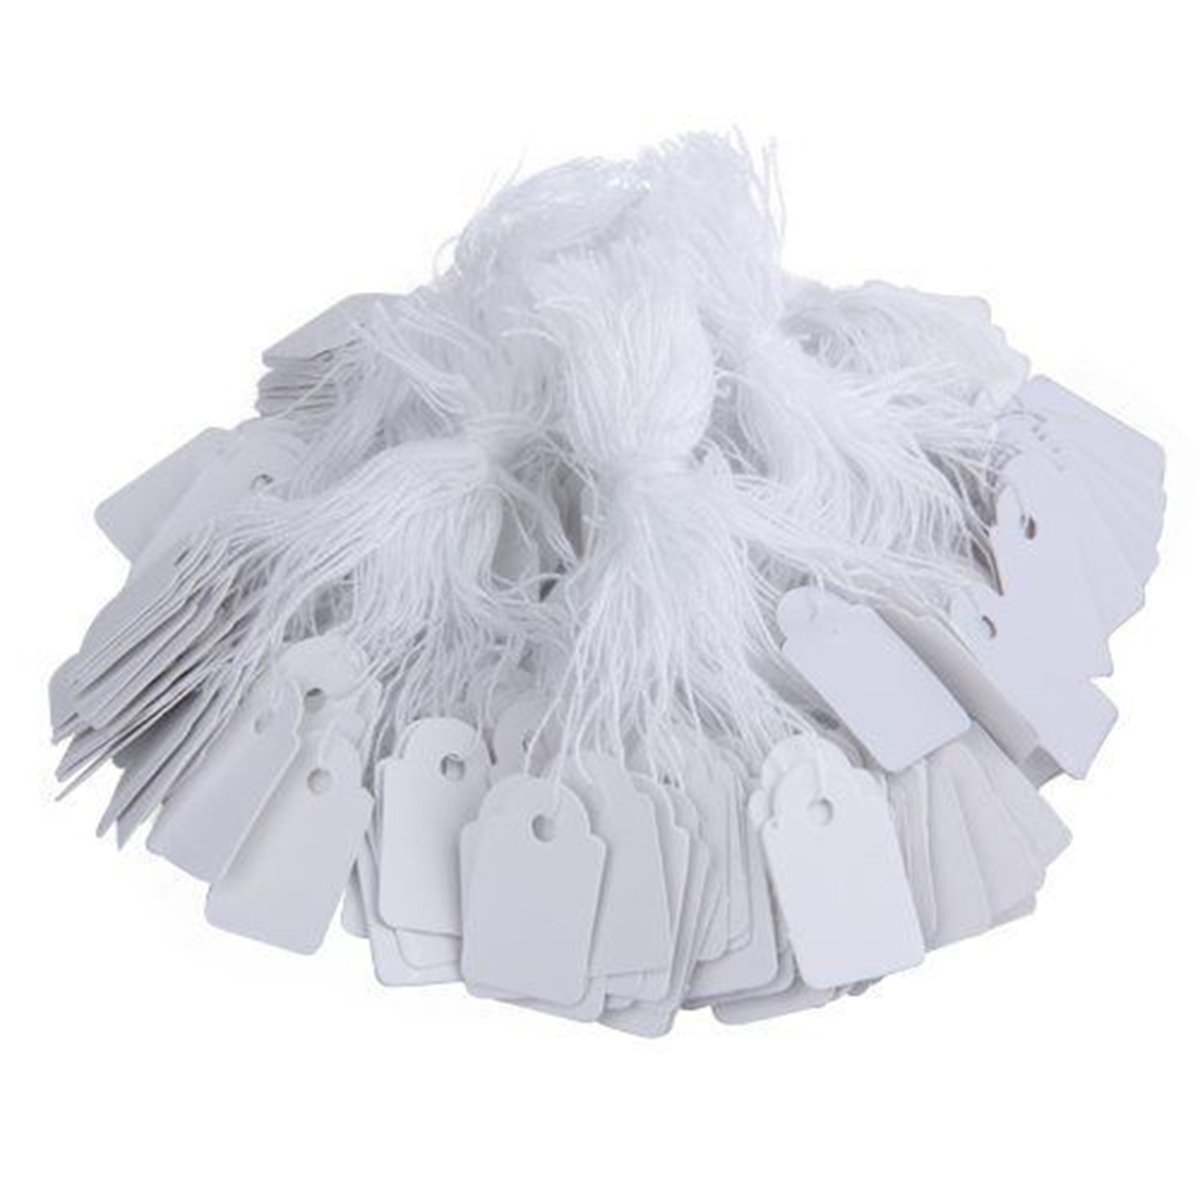 500pcs Label Tags with String for Jewelry Display Price Ticket Gift Luggage Tag (Blank) PDTO